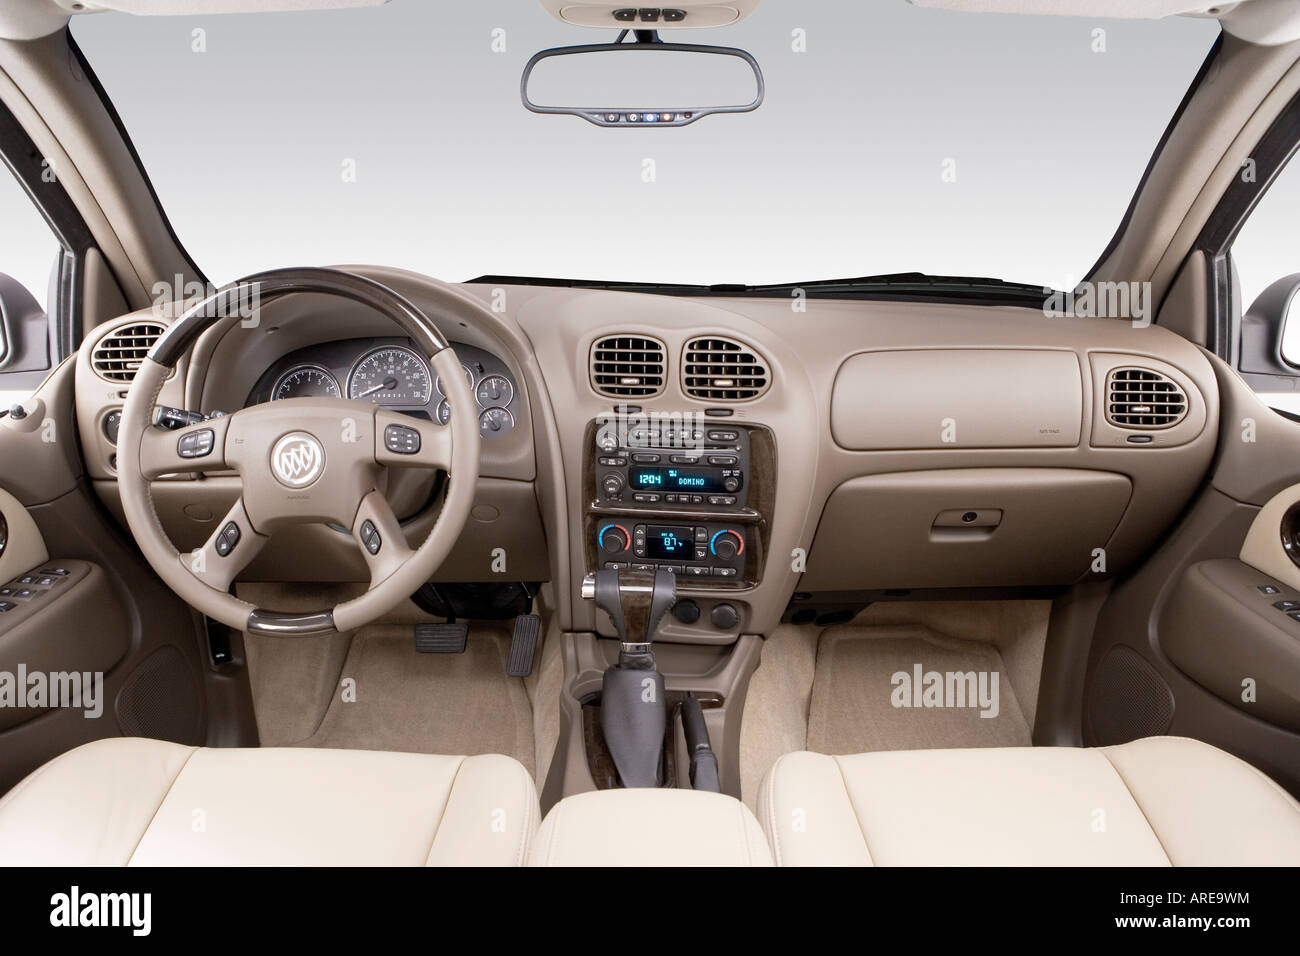 Fuse Box Diagram For 2007 Buick Rainier Wiring Library Grand National Interior 4k Pictures Full Hq Wallpaper 2006